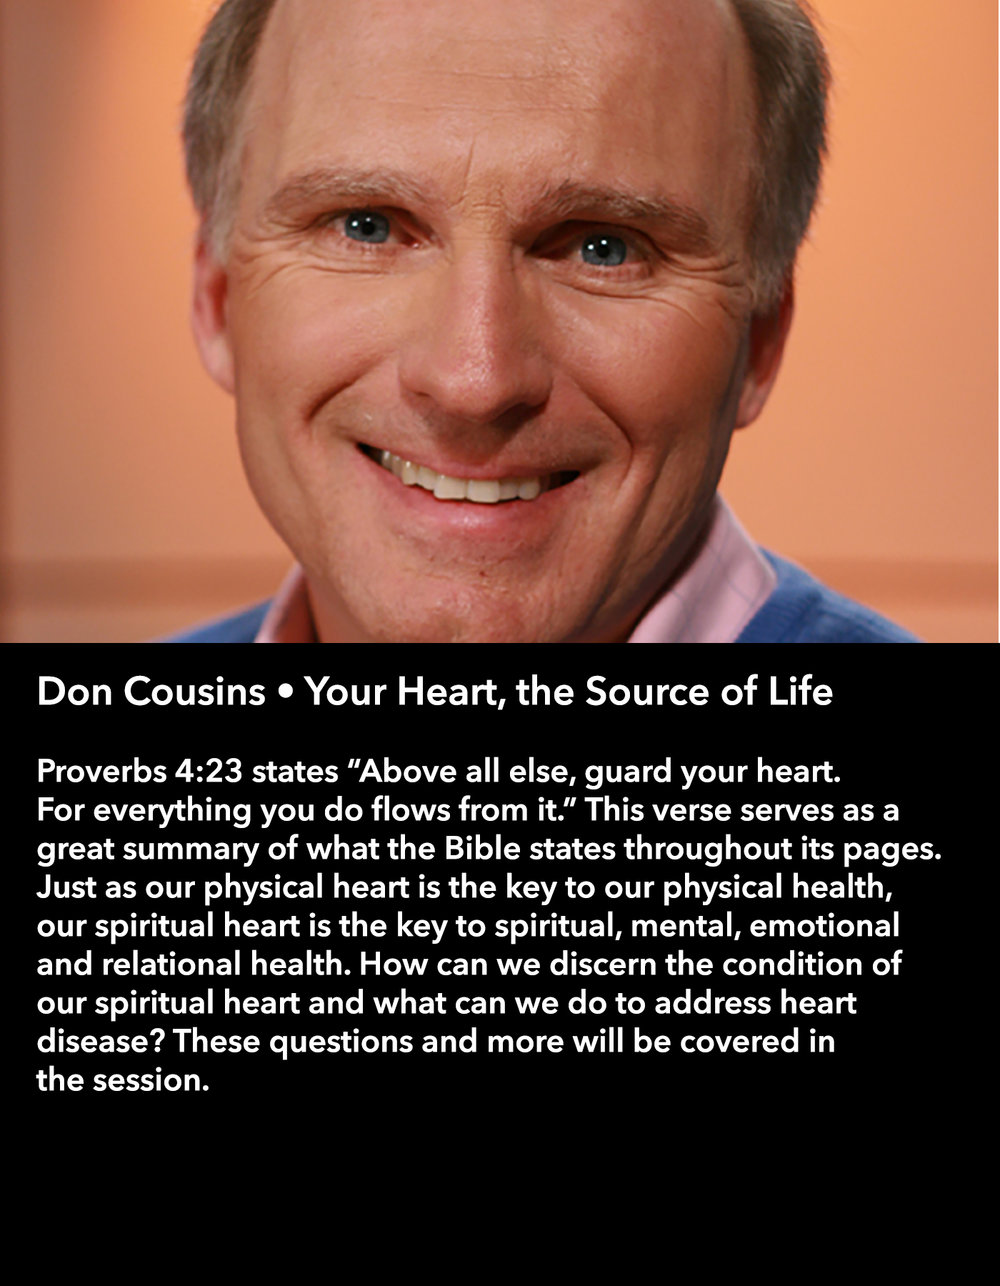 Don Cousins • Your Heart, the Source of Life • Friday Night, March 17 • 8:30 – 9:45 pm